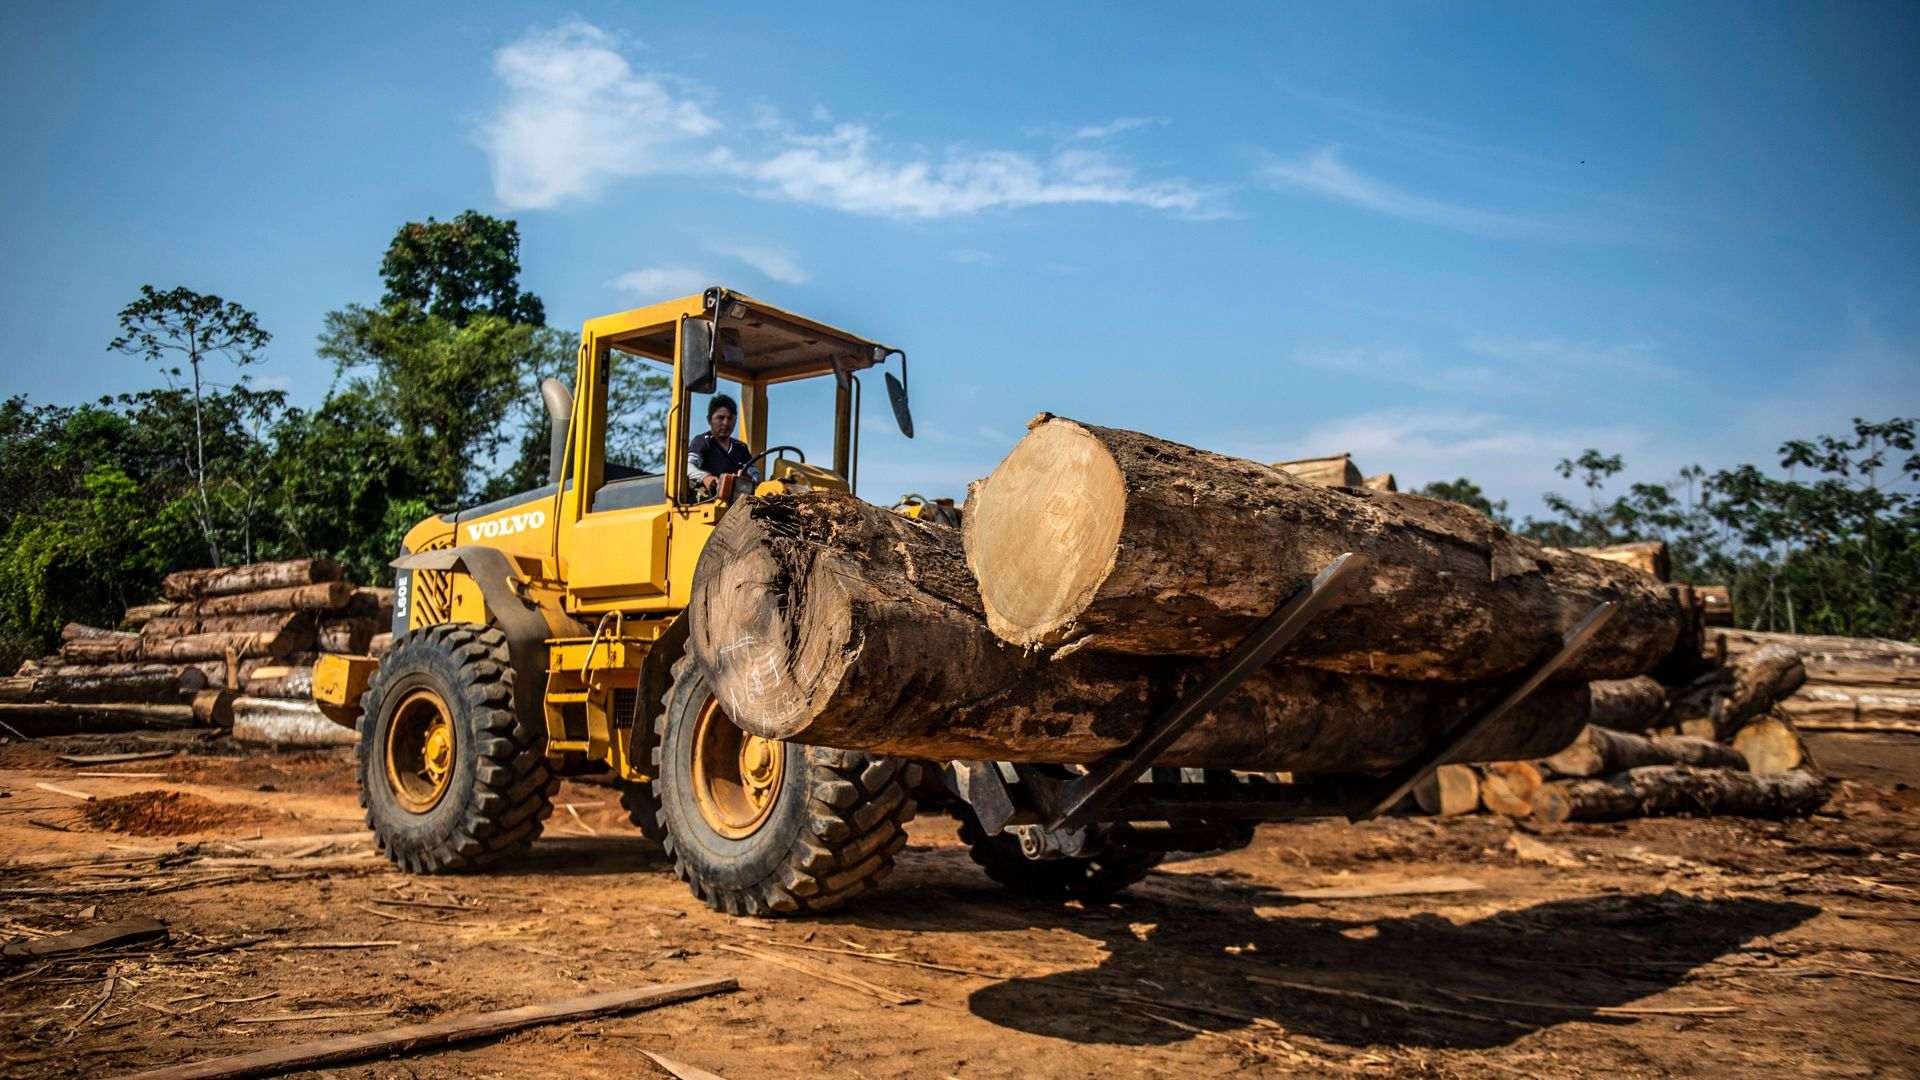 A tractor picks up a large piece of a tree.